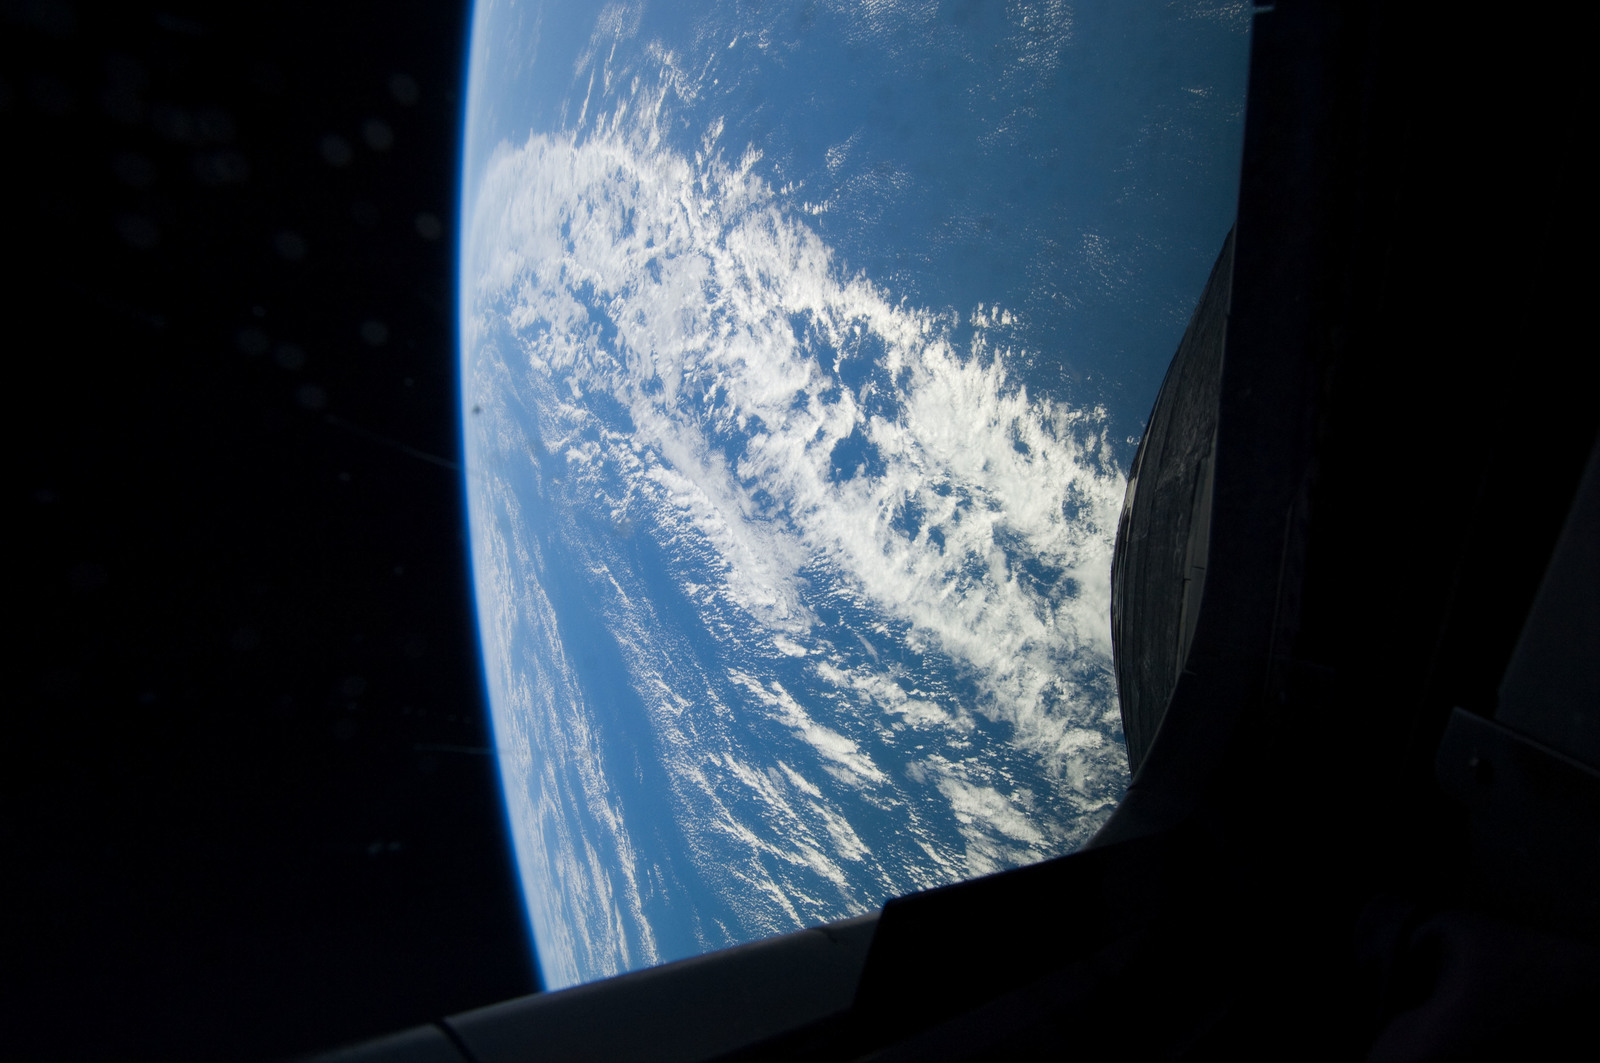 s133E006948 - STS-133 - Earth Observation taken by the STS-133 crew